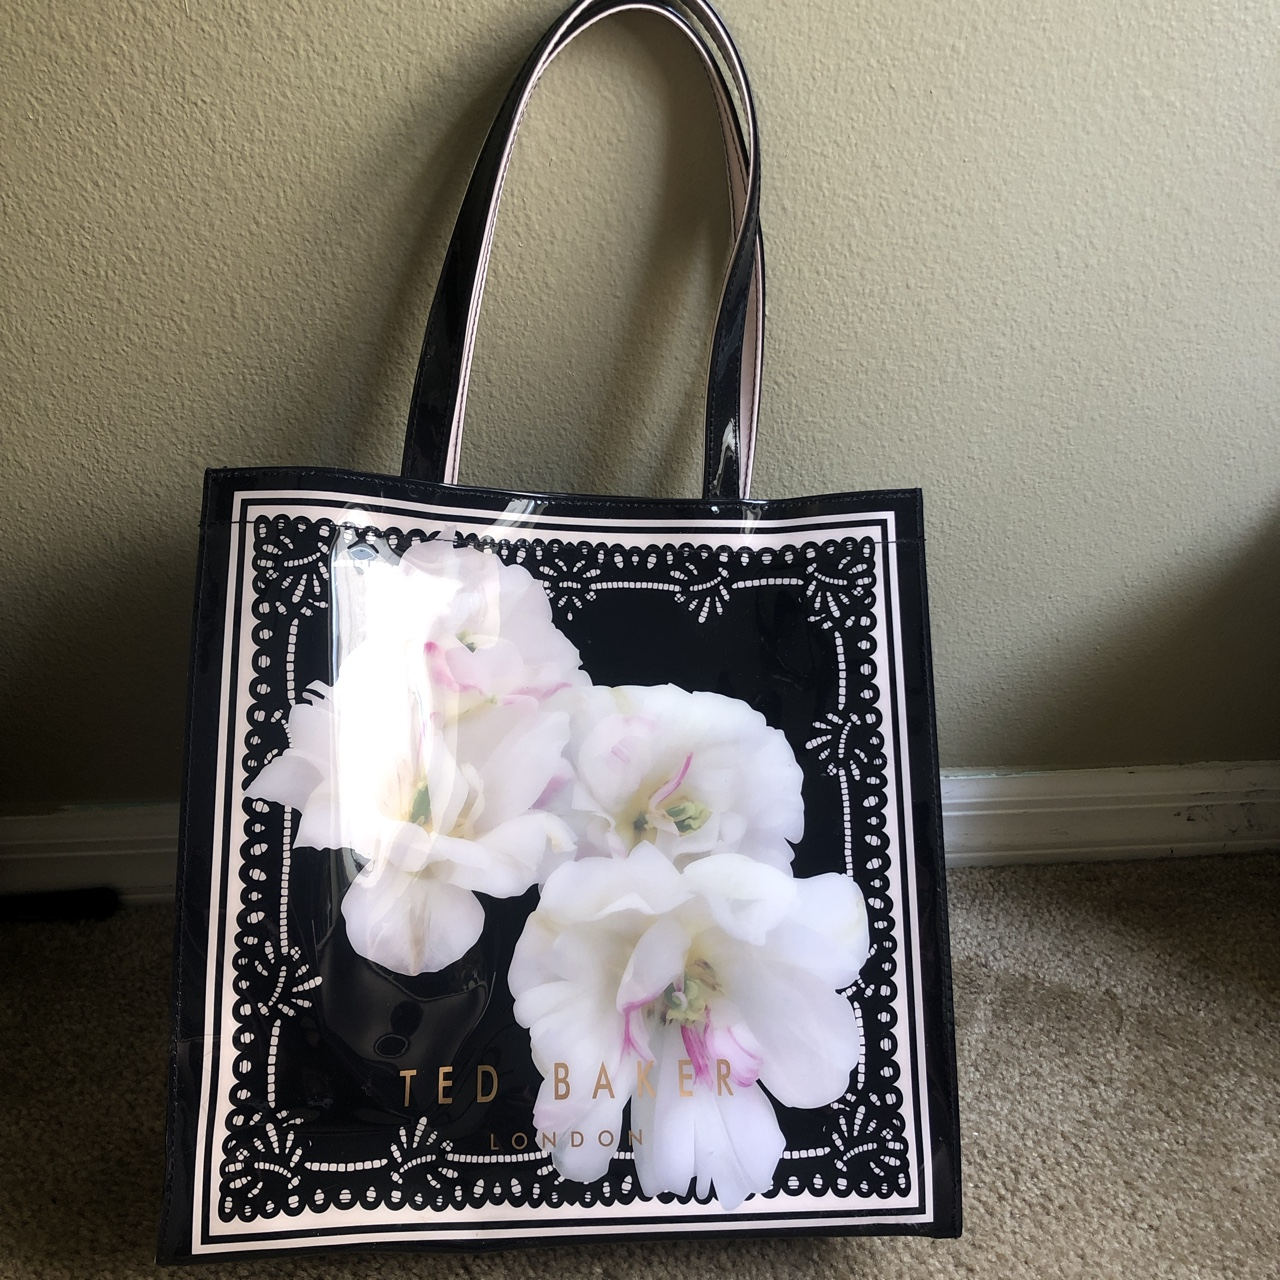 Product Image 1 - Brand new Ted Baker Tote